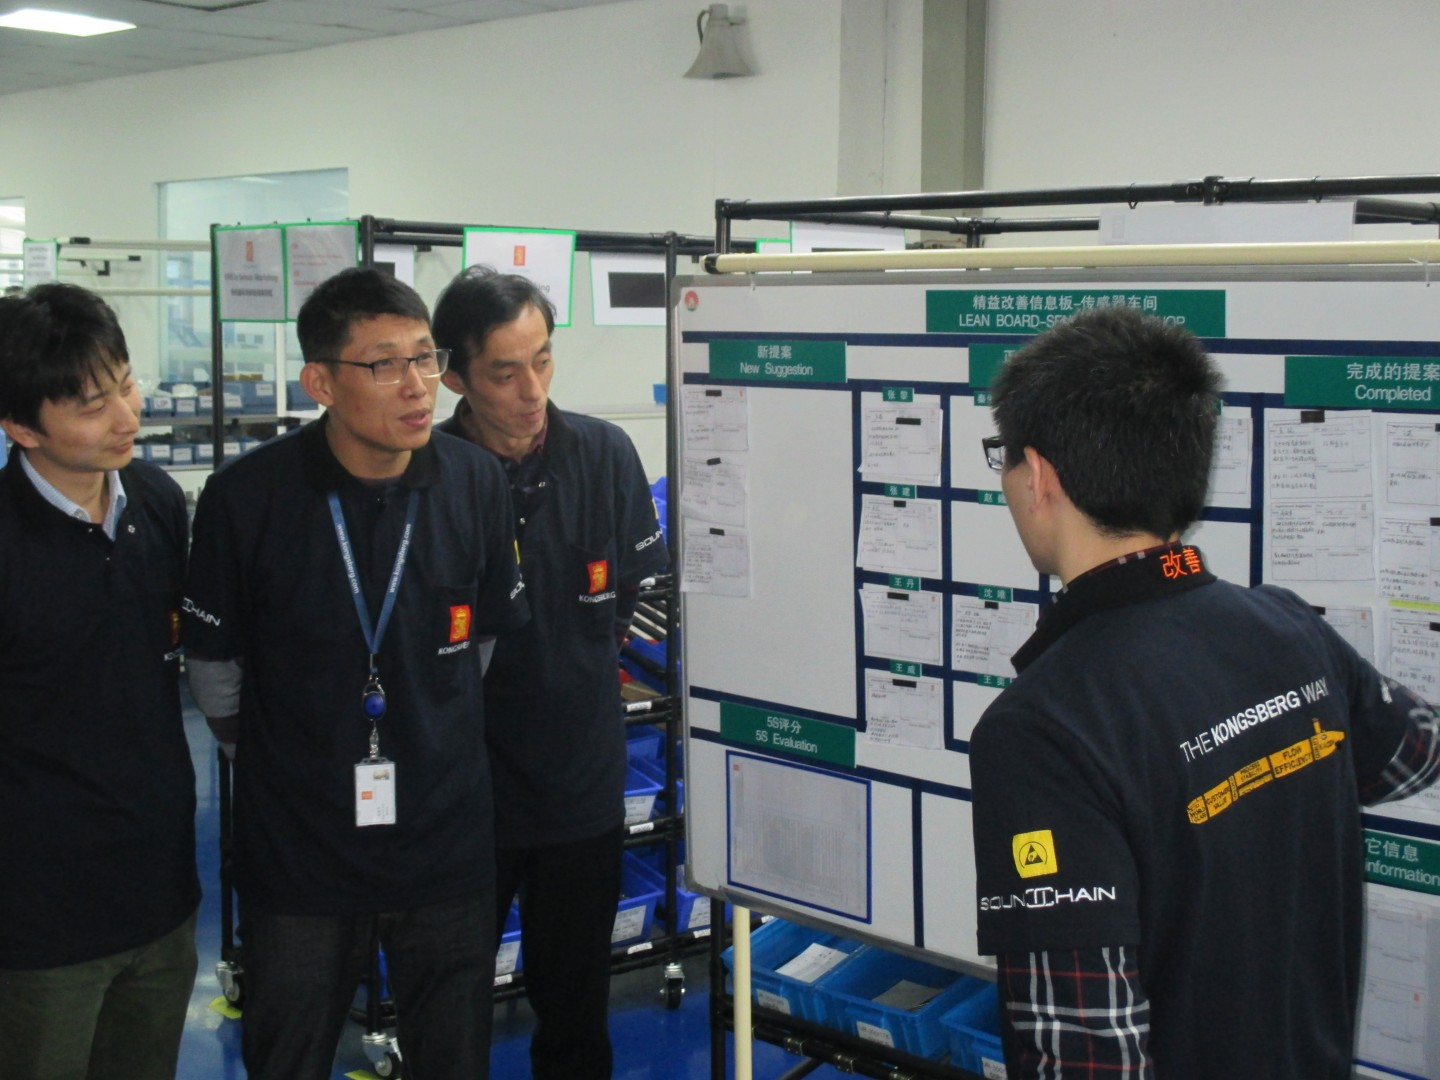 Deploying A Norwegian Corporate Lean Program In China The